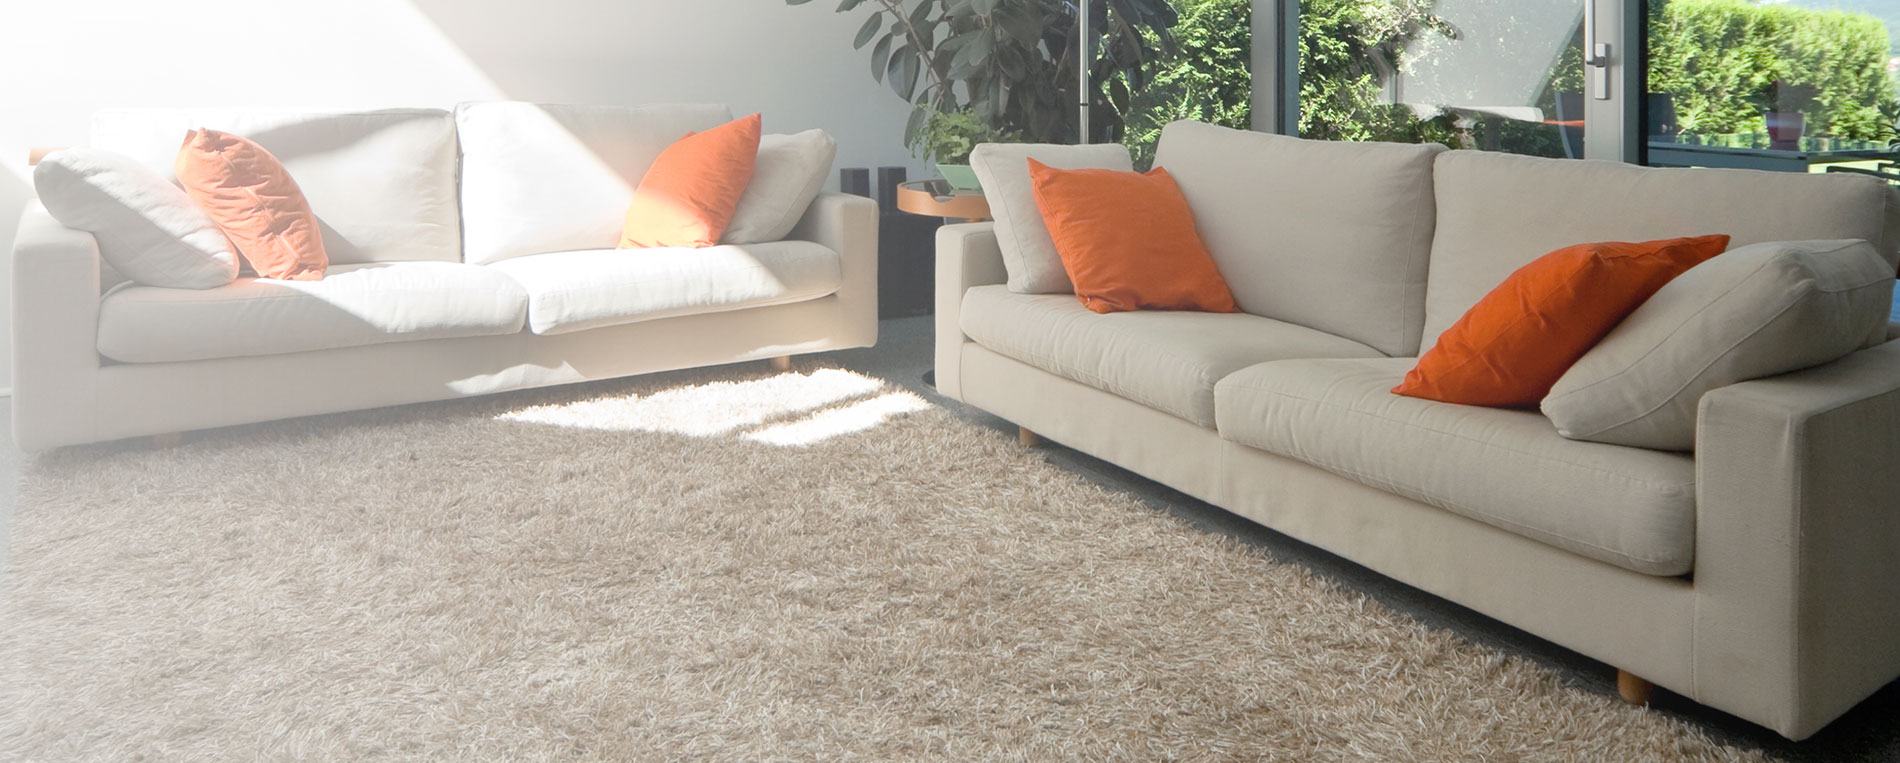 Carpet Cleaning | Upholstery Cleaning